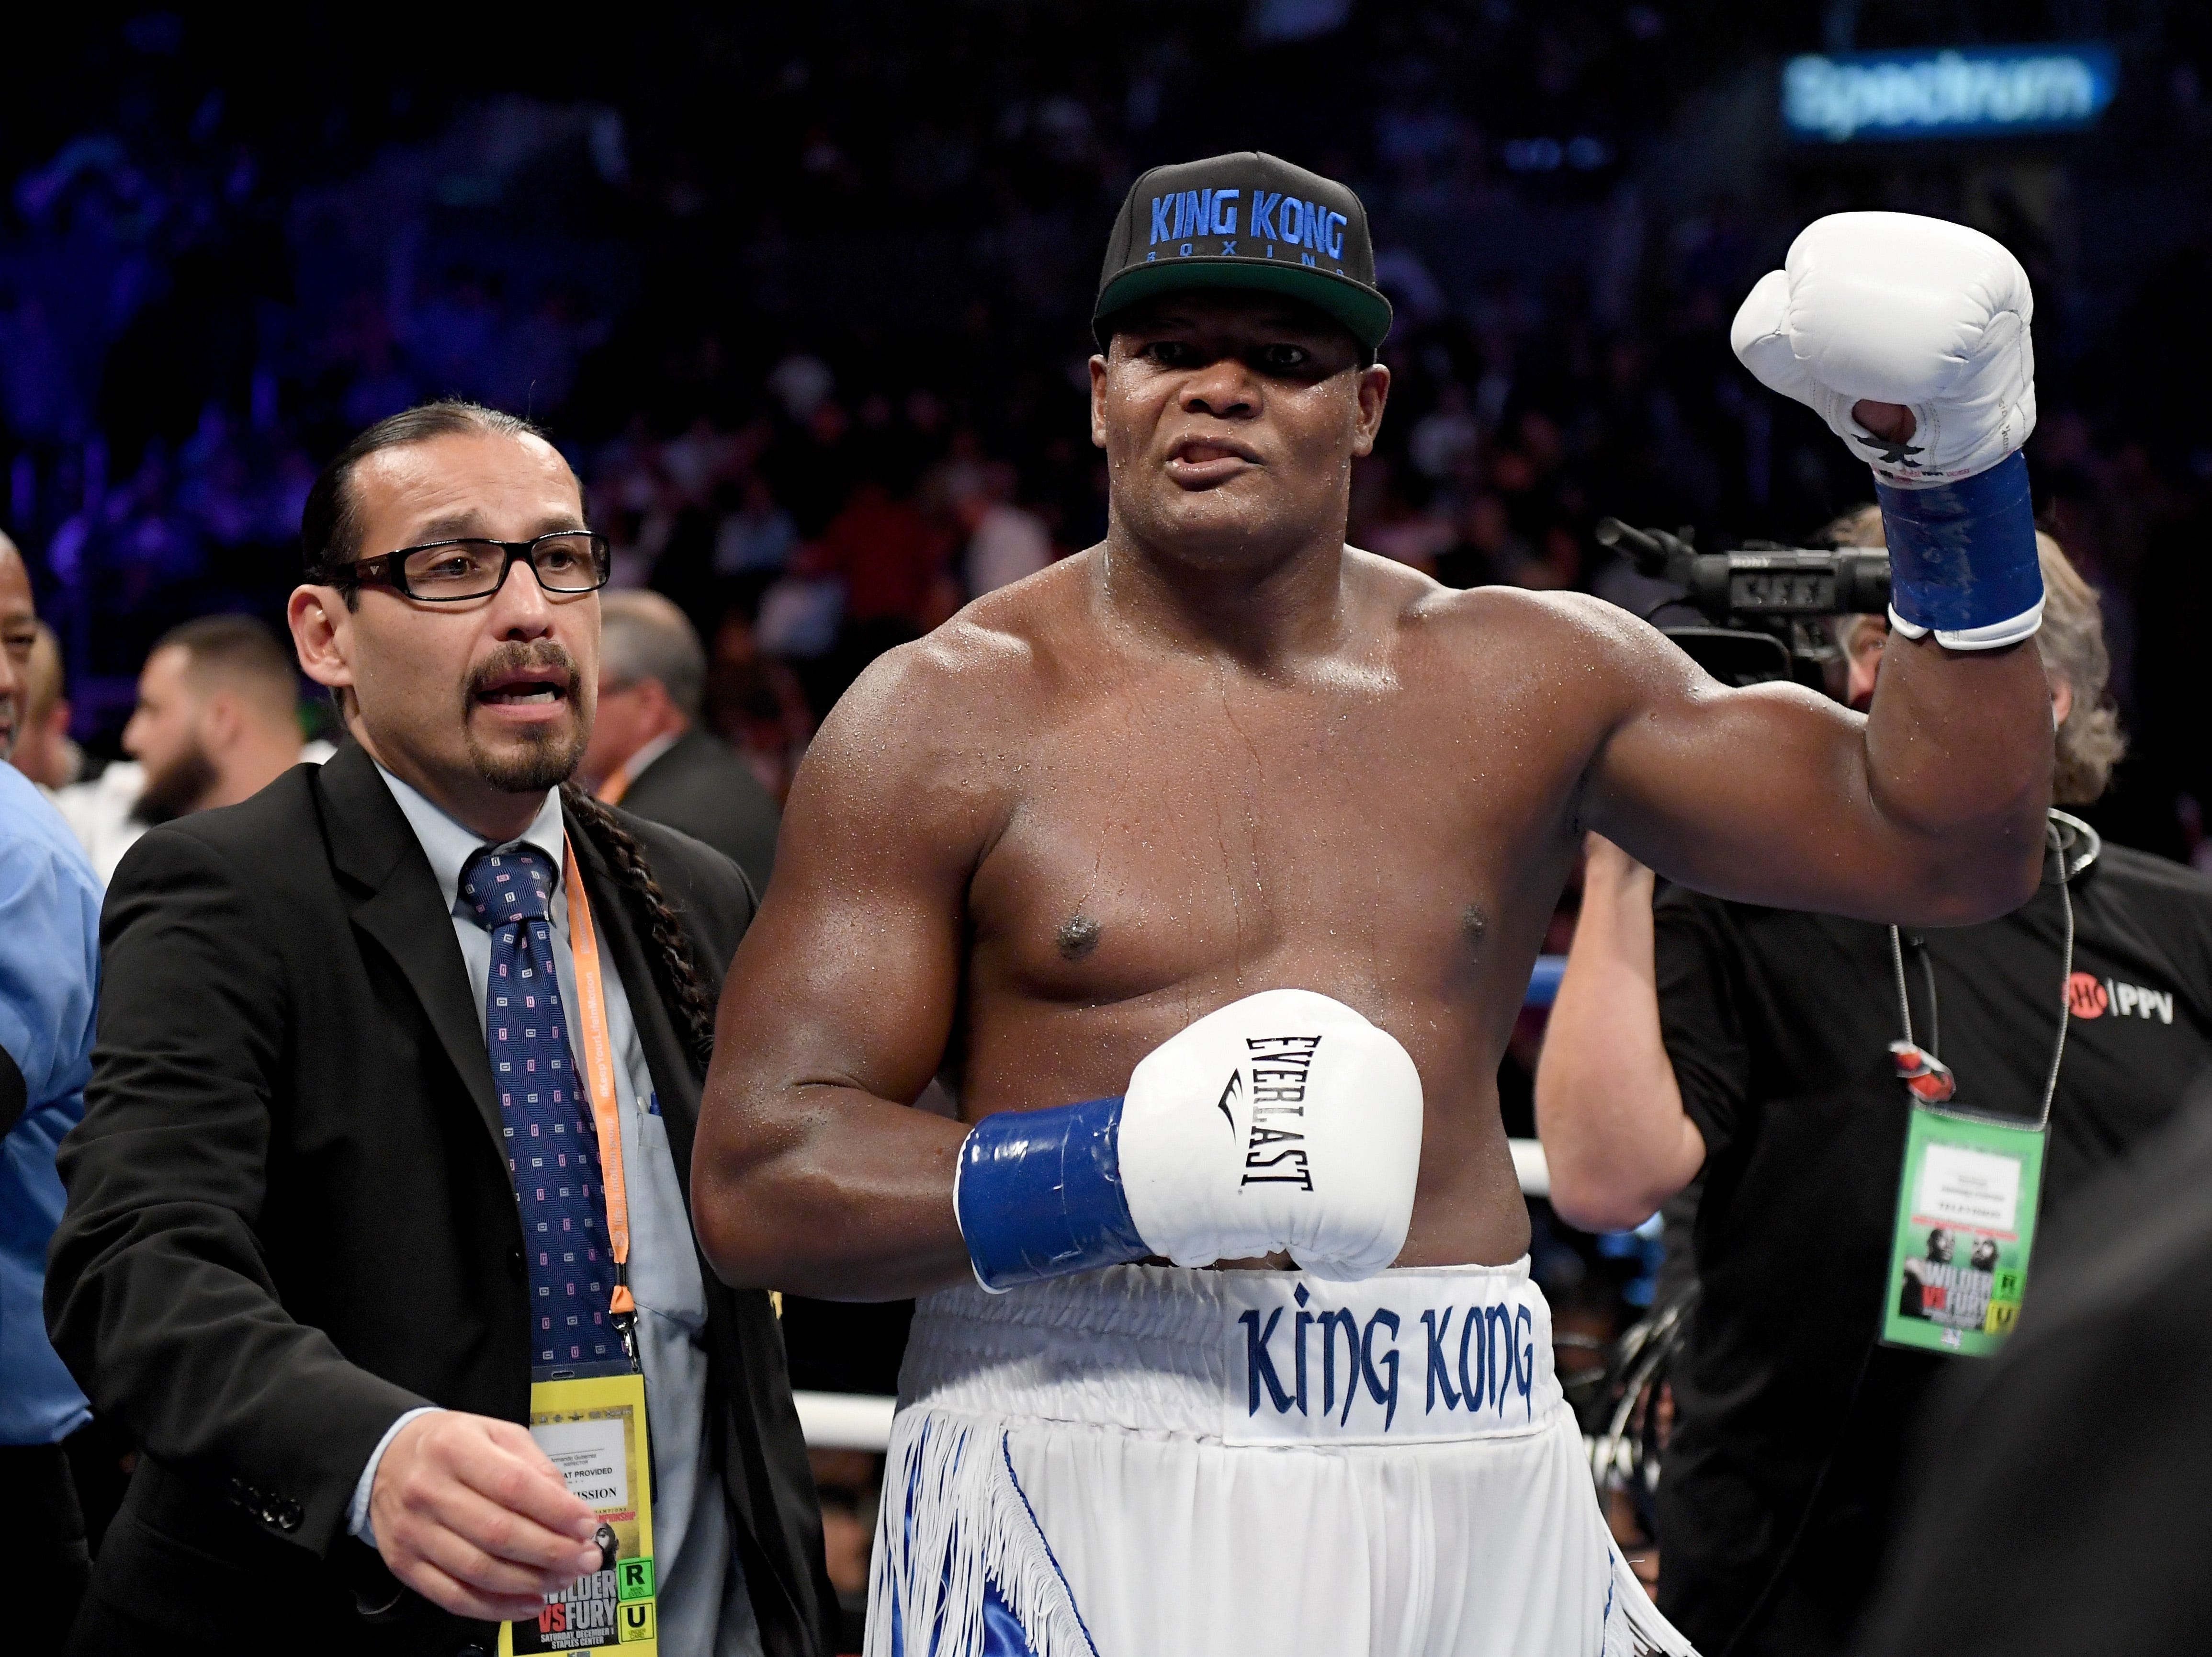 Luis Ortiz celebrates a 10th round TKO victory over Travis Kauffman during a heavyweight bout Dec. 1 at Staples Center.